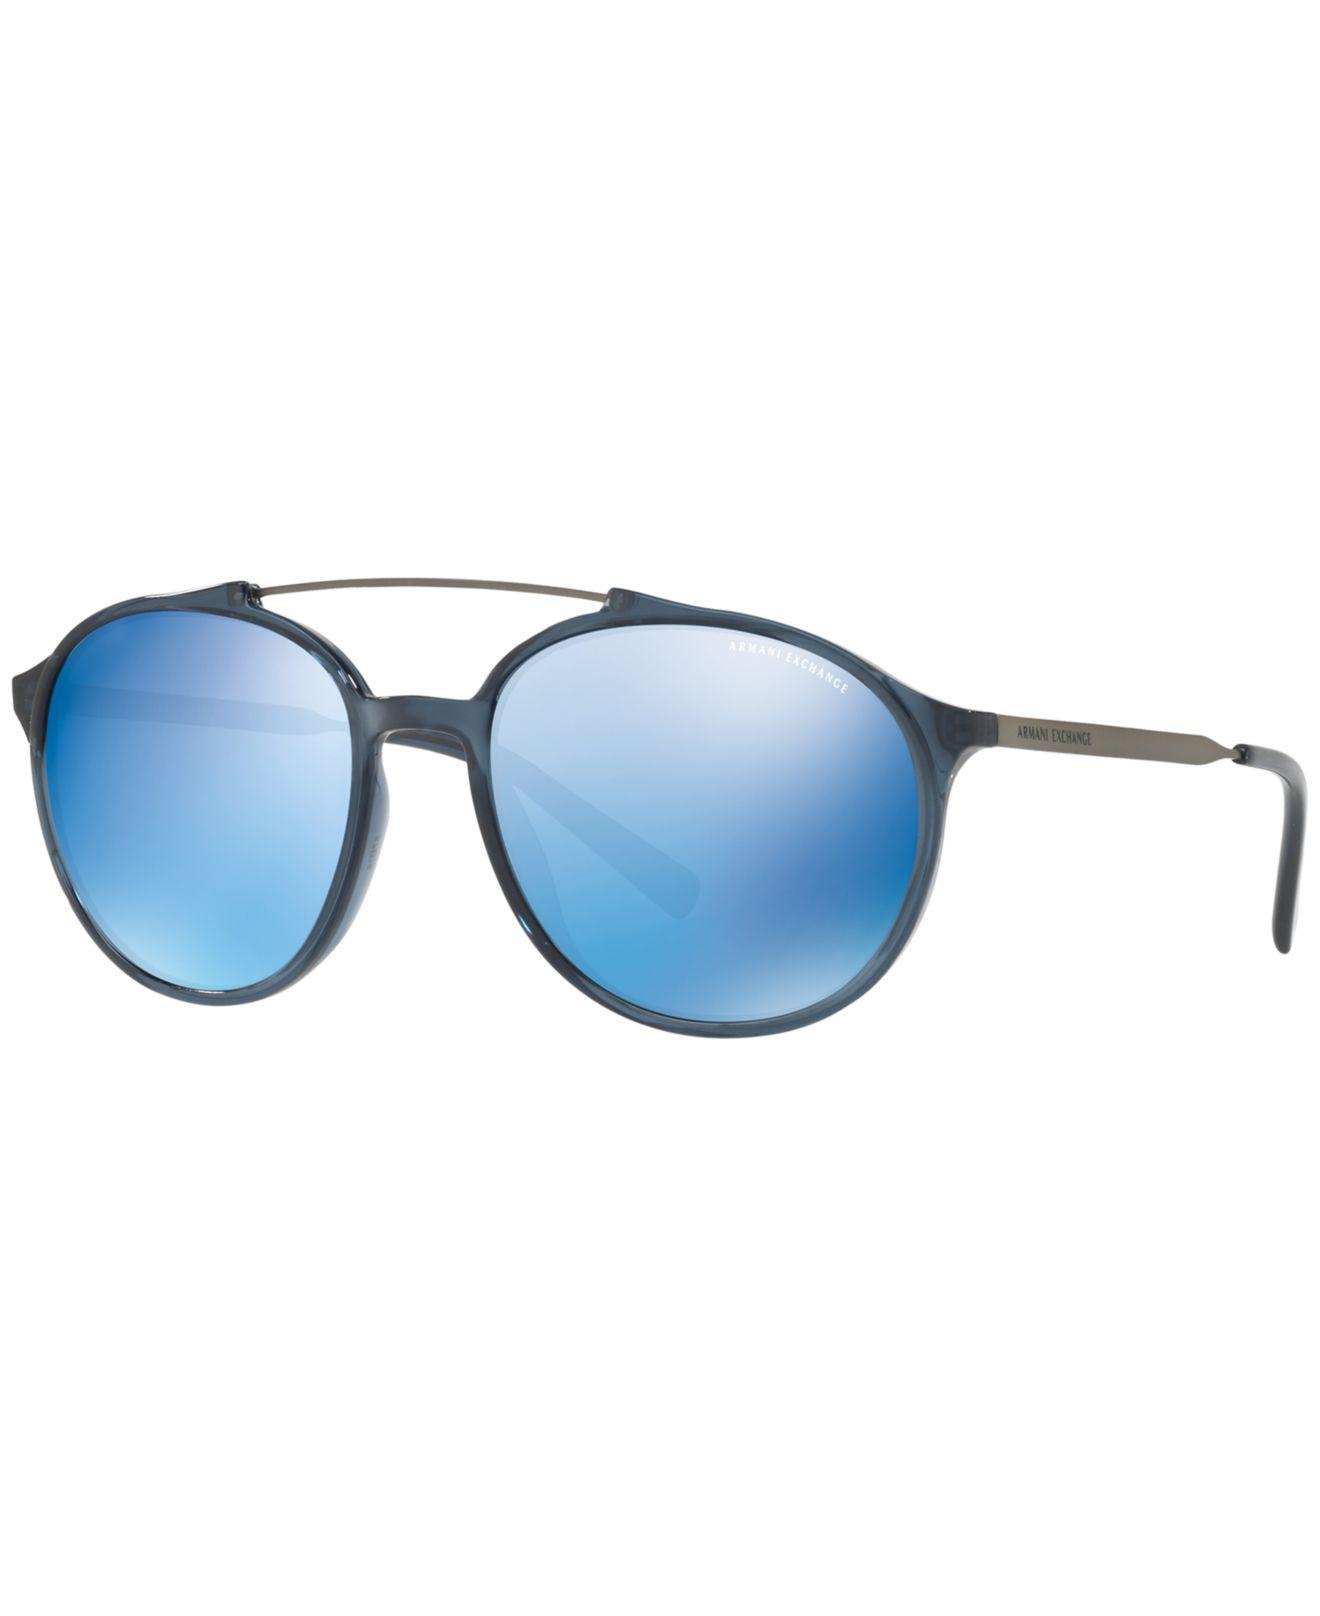 5767e33a859 Lyst - Armani Exchange Sunglasses